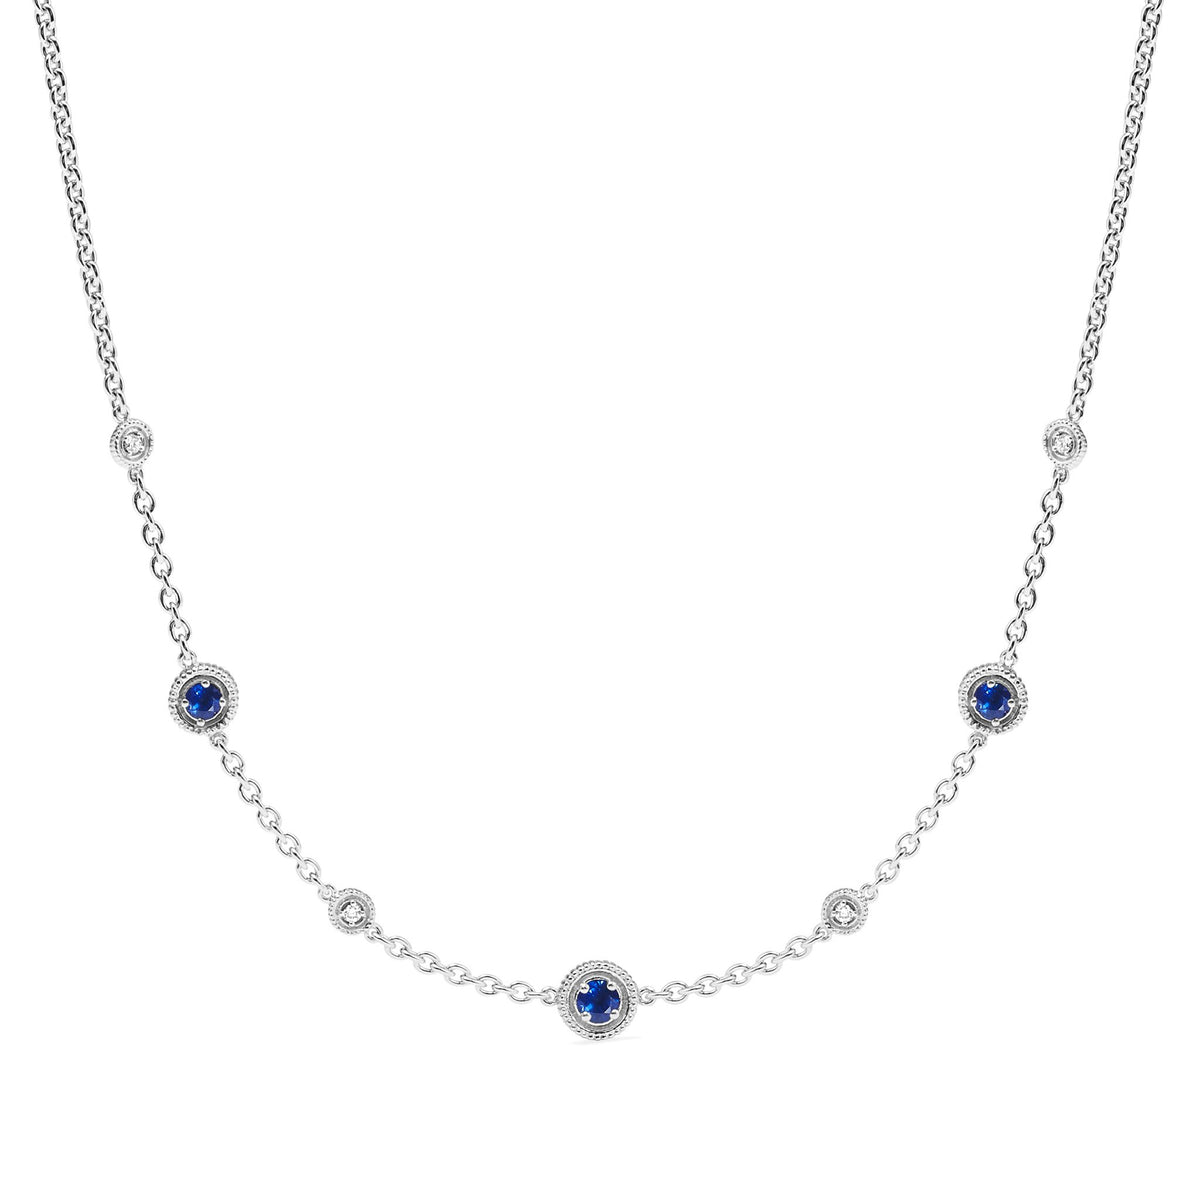 Max Station Necklace with Sapphire and Diamonds